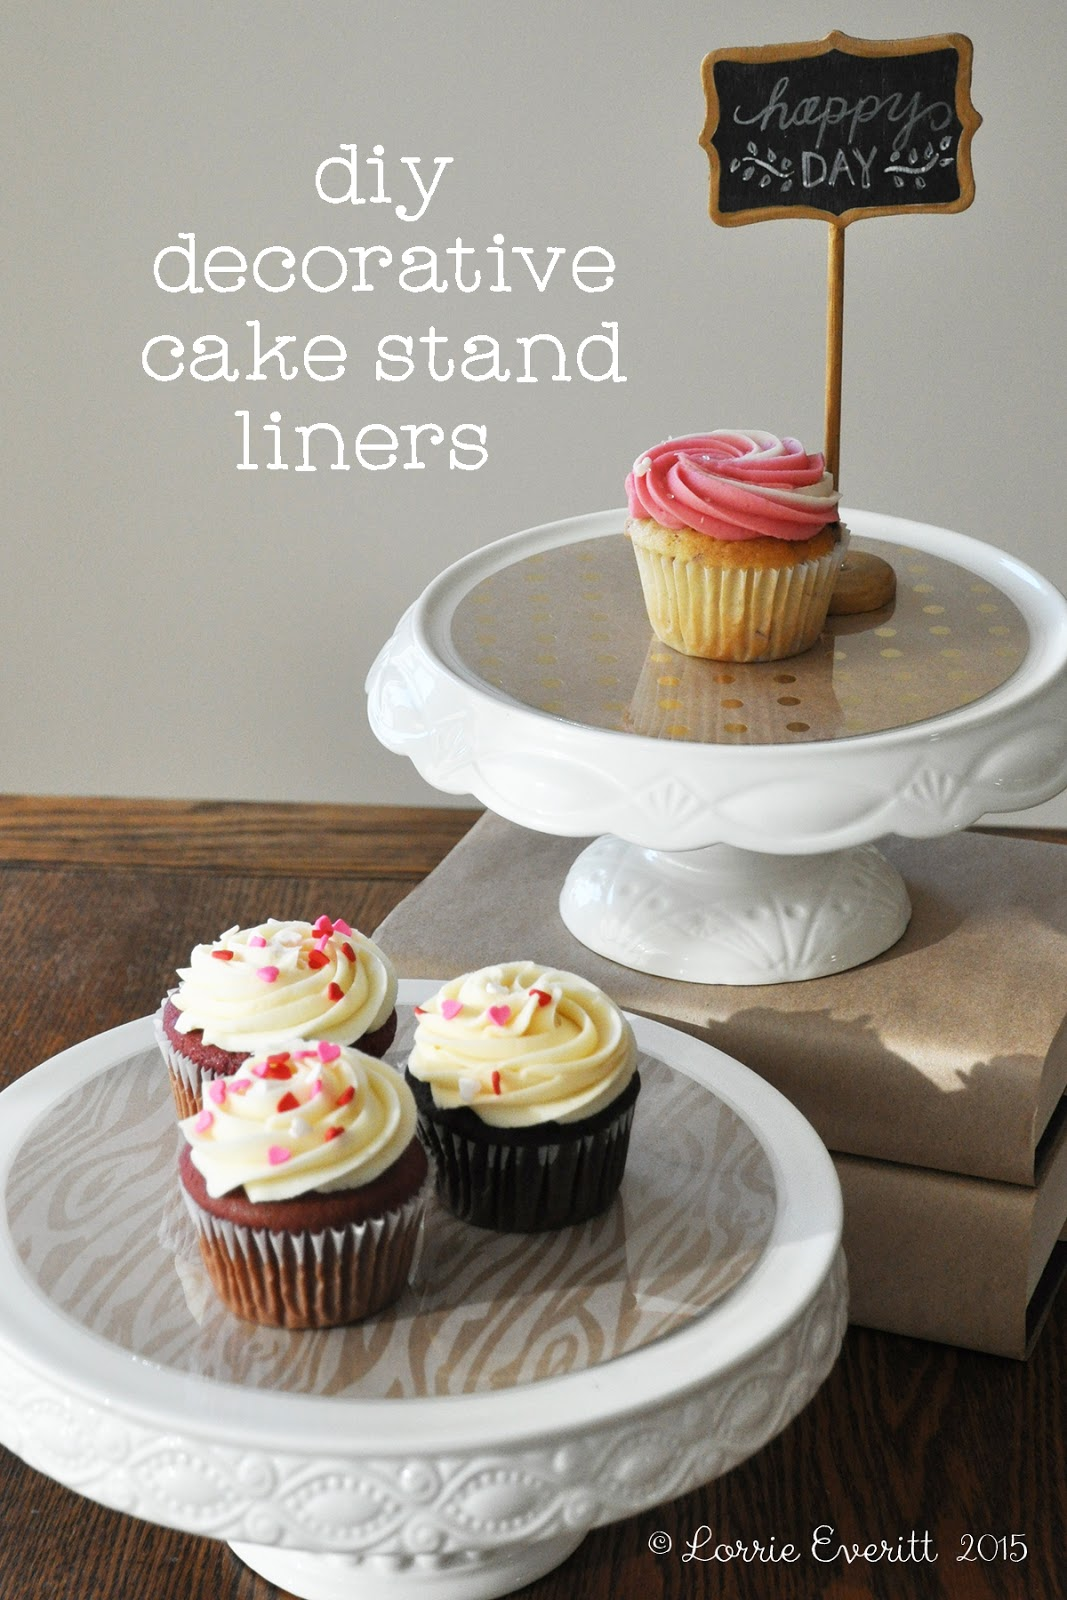 lorrie everitt studio let 39 s celebrate with diy cake stand. Black Bedroom Furniture Sets. Home Design Ideas